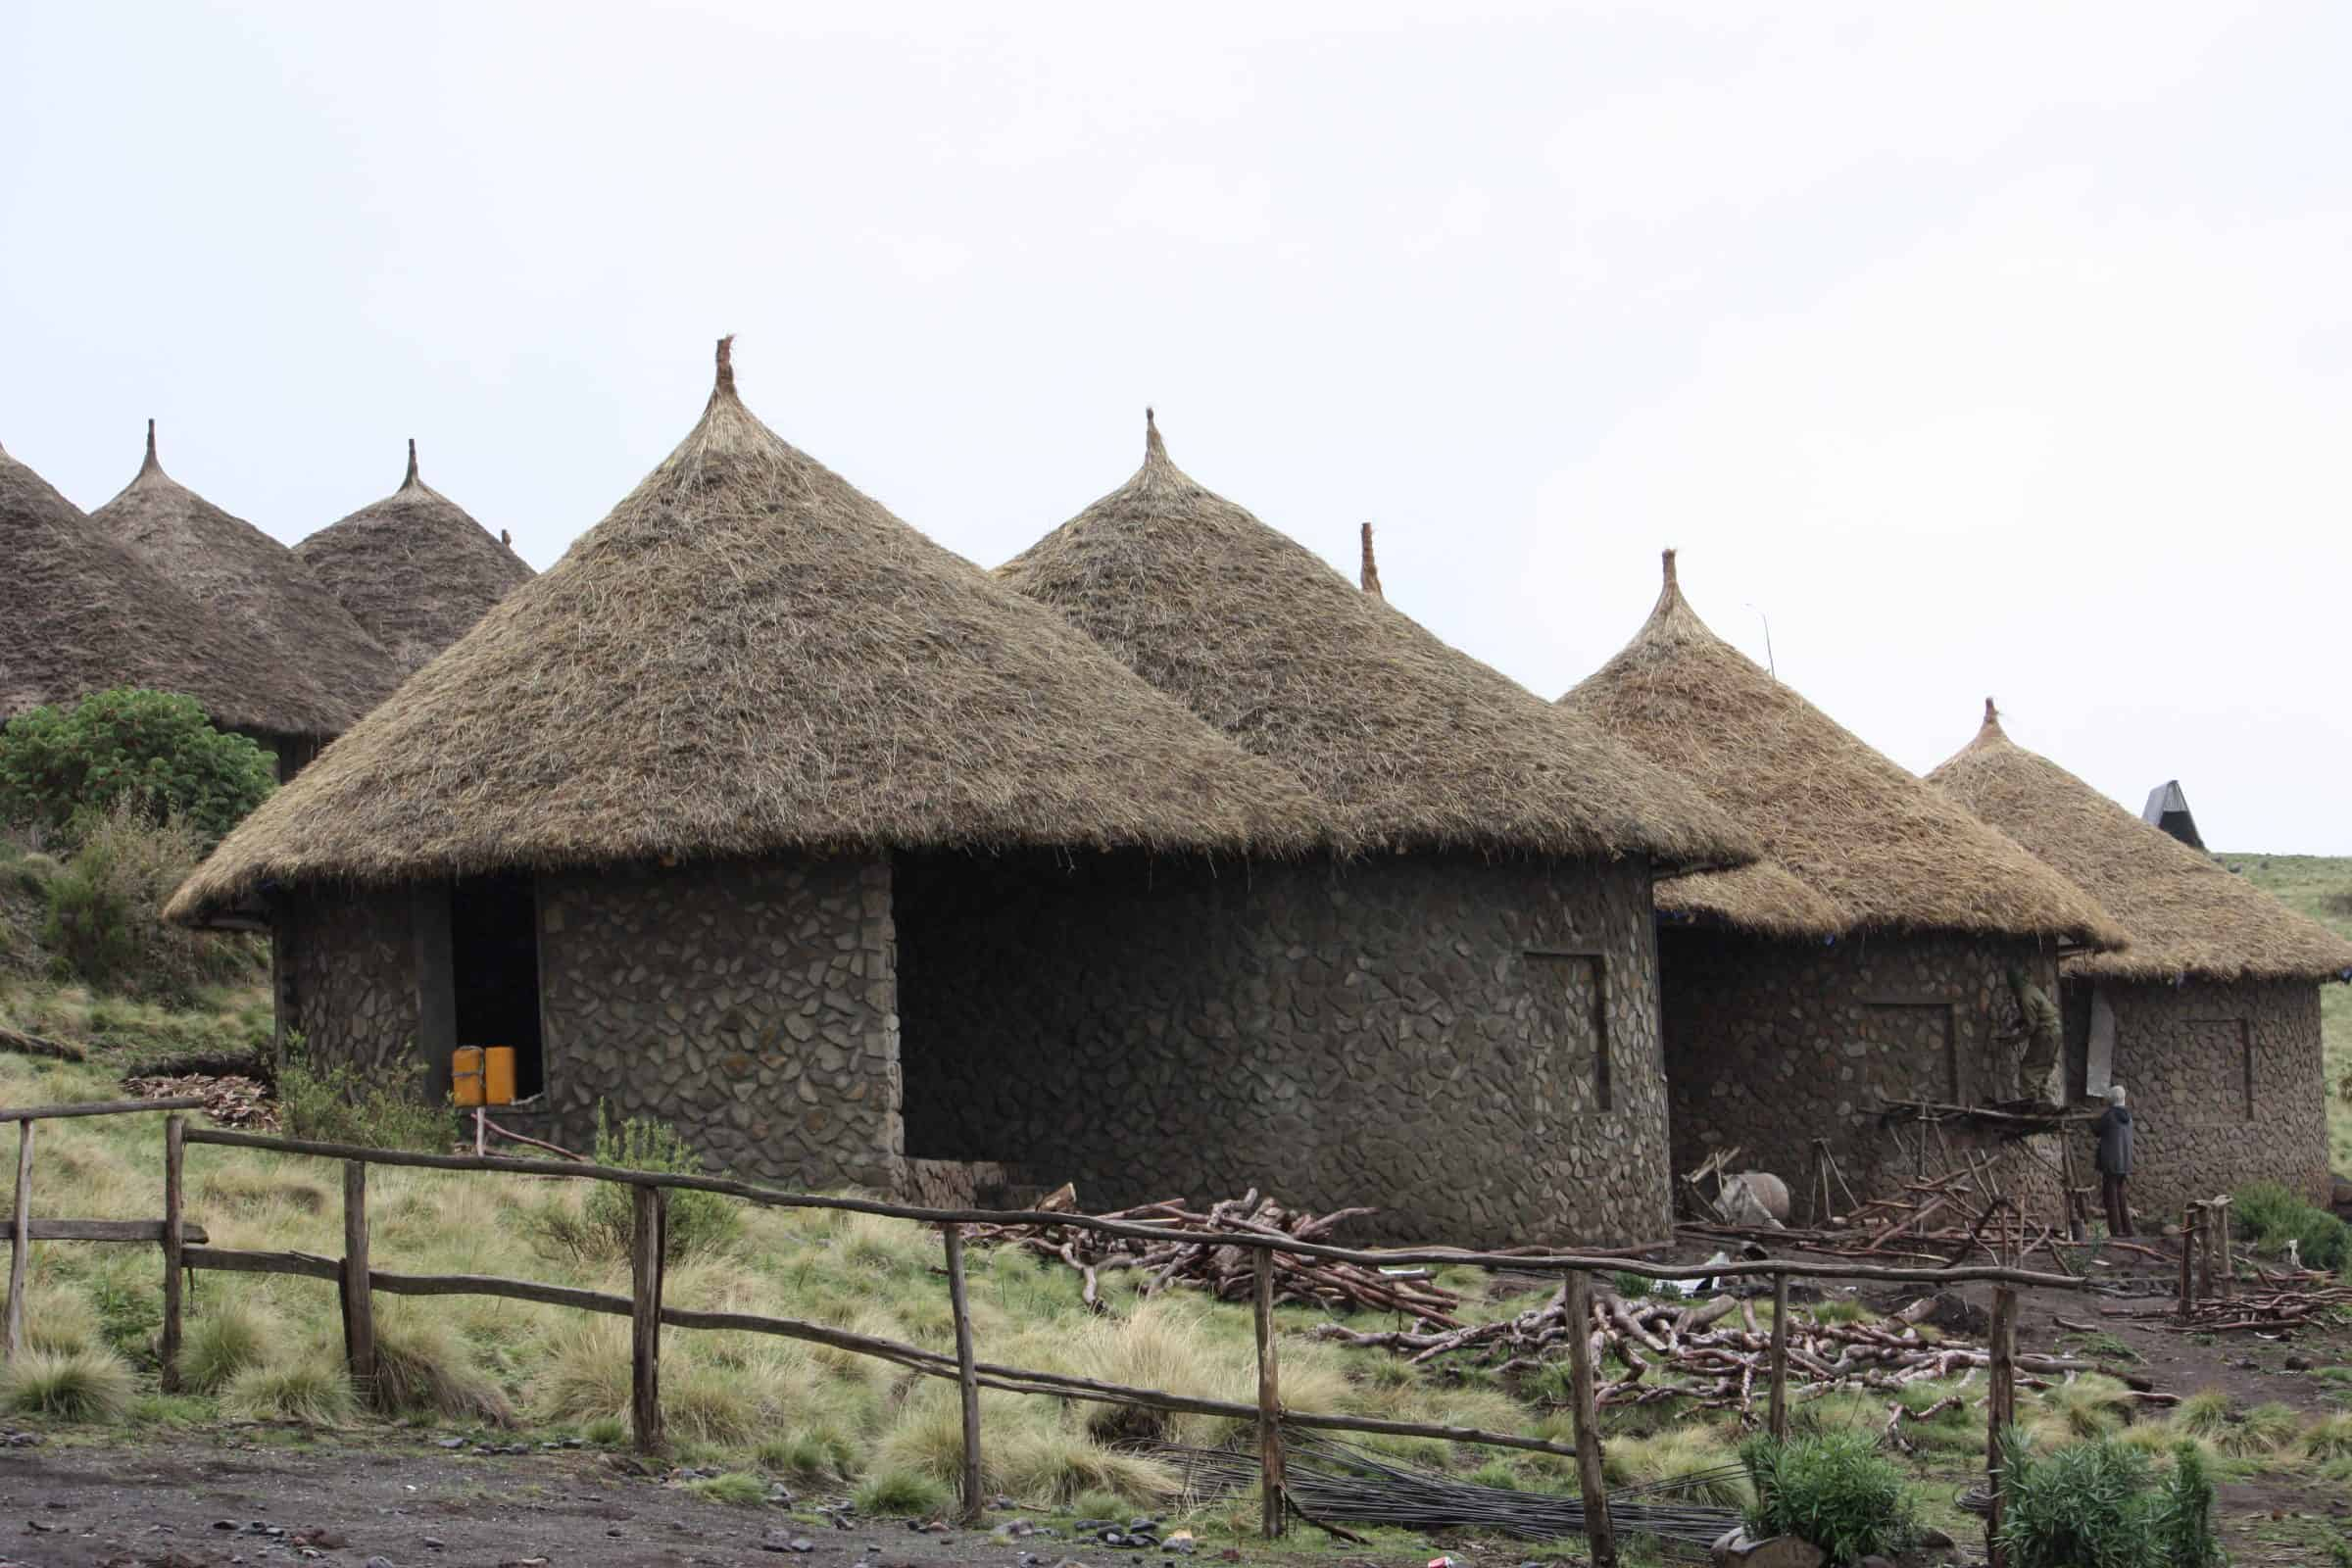 Ethiopia thatched huts